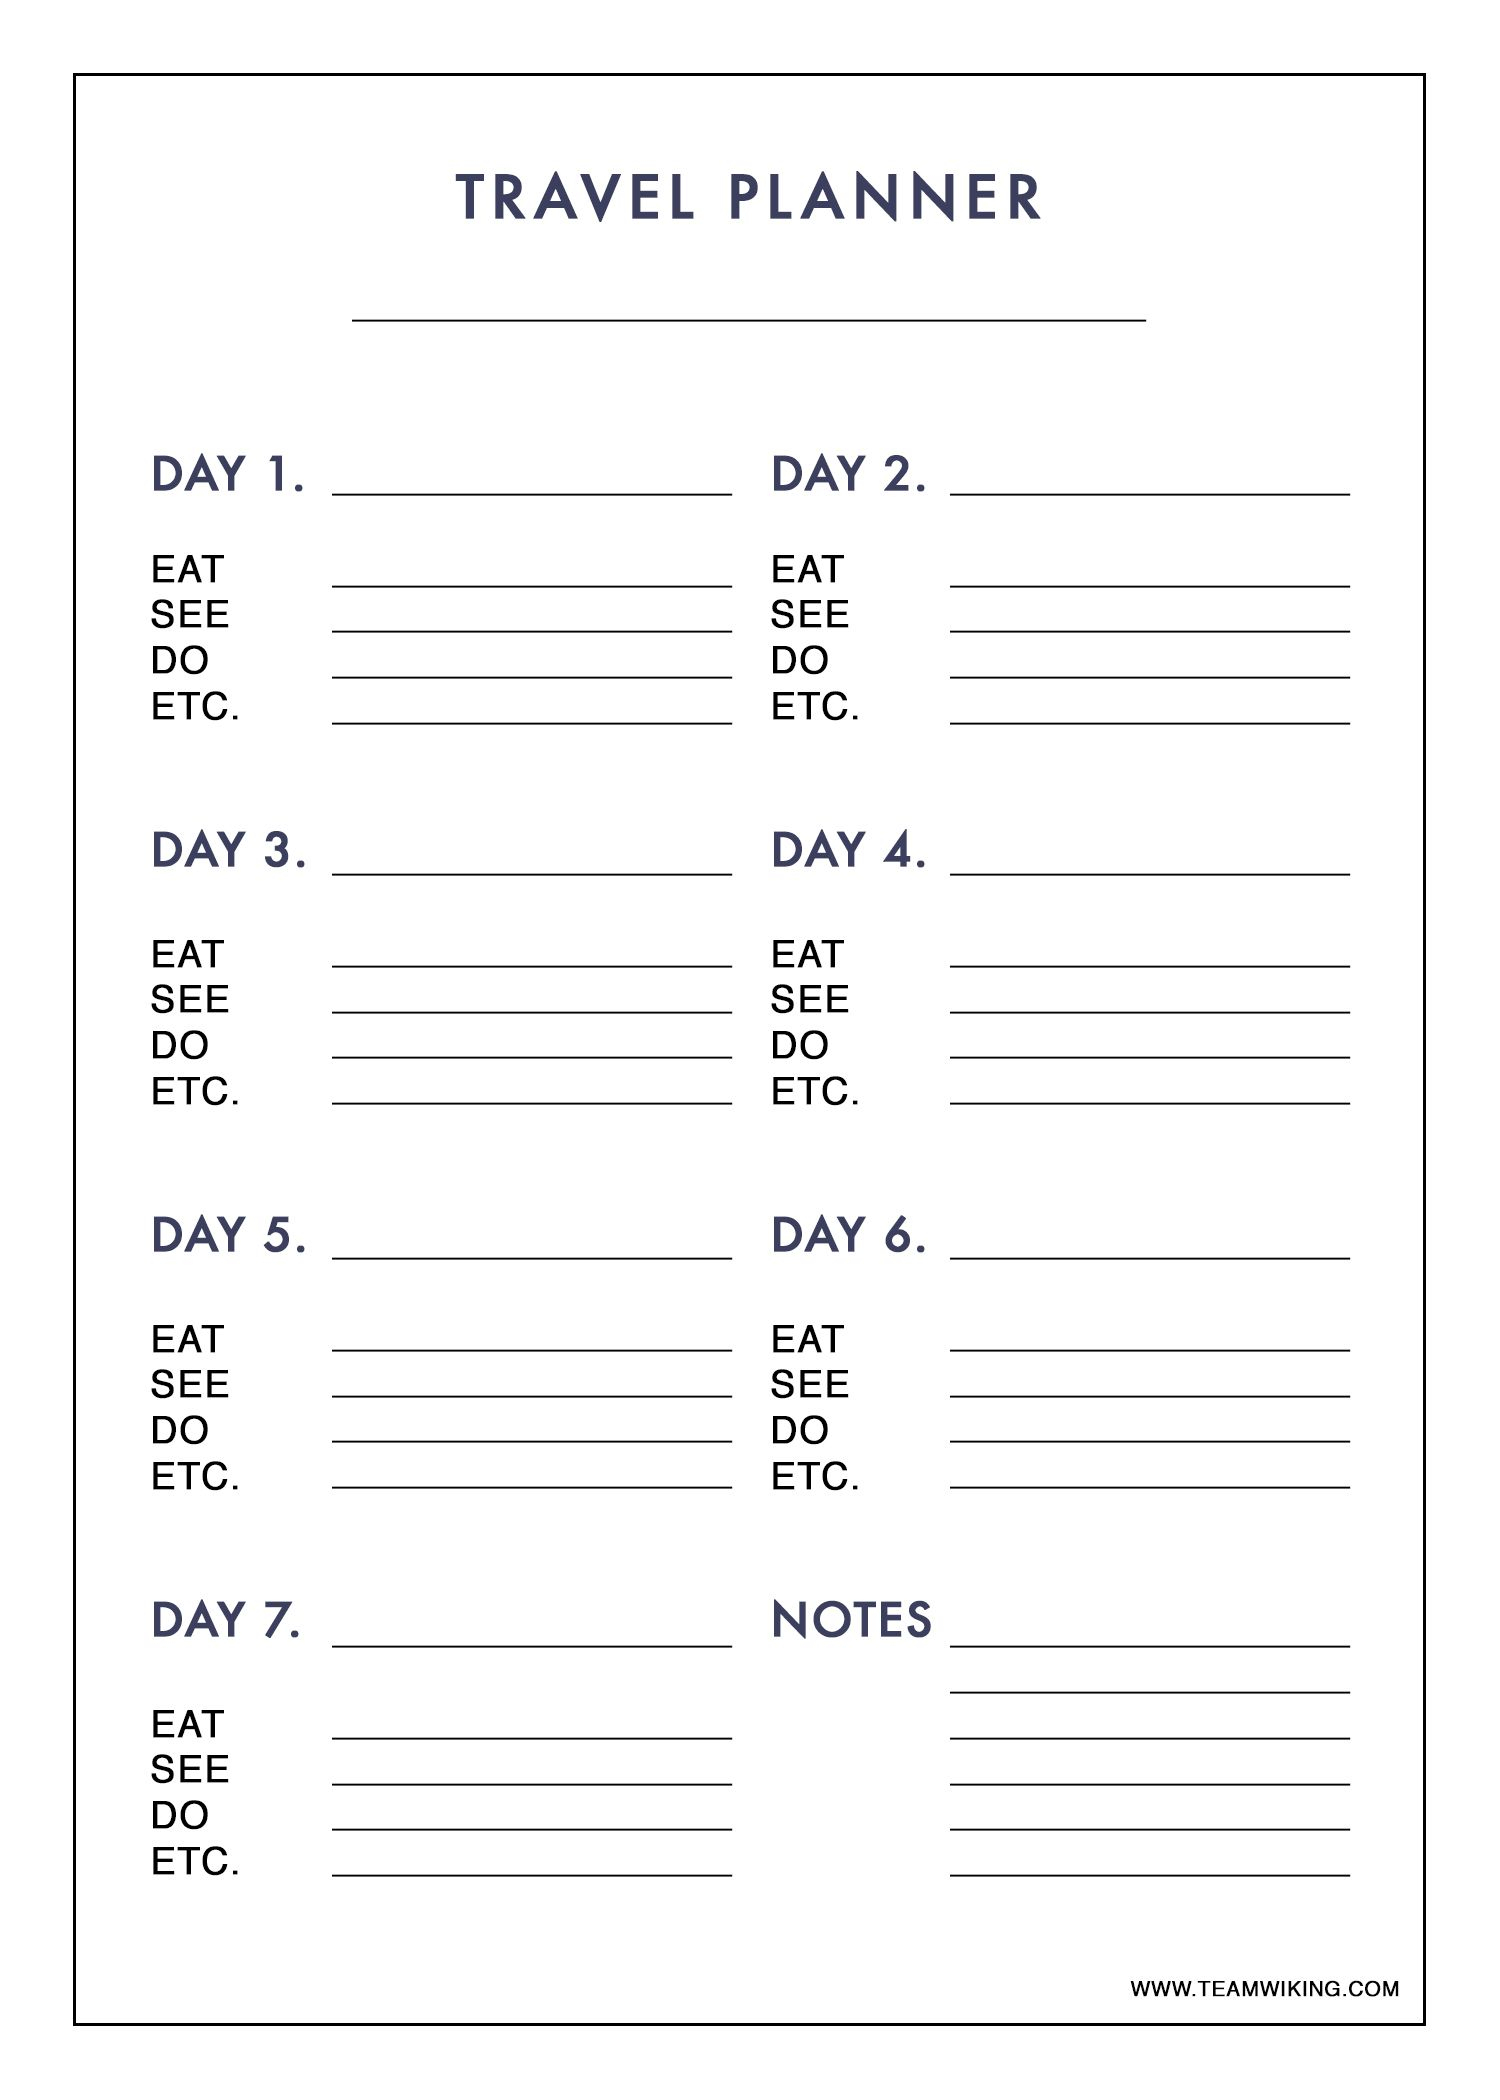 Free Printable 7 Day Travel Planner (Use To Plan Outfits - Packing - Free Printable Road Trip Planner